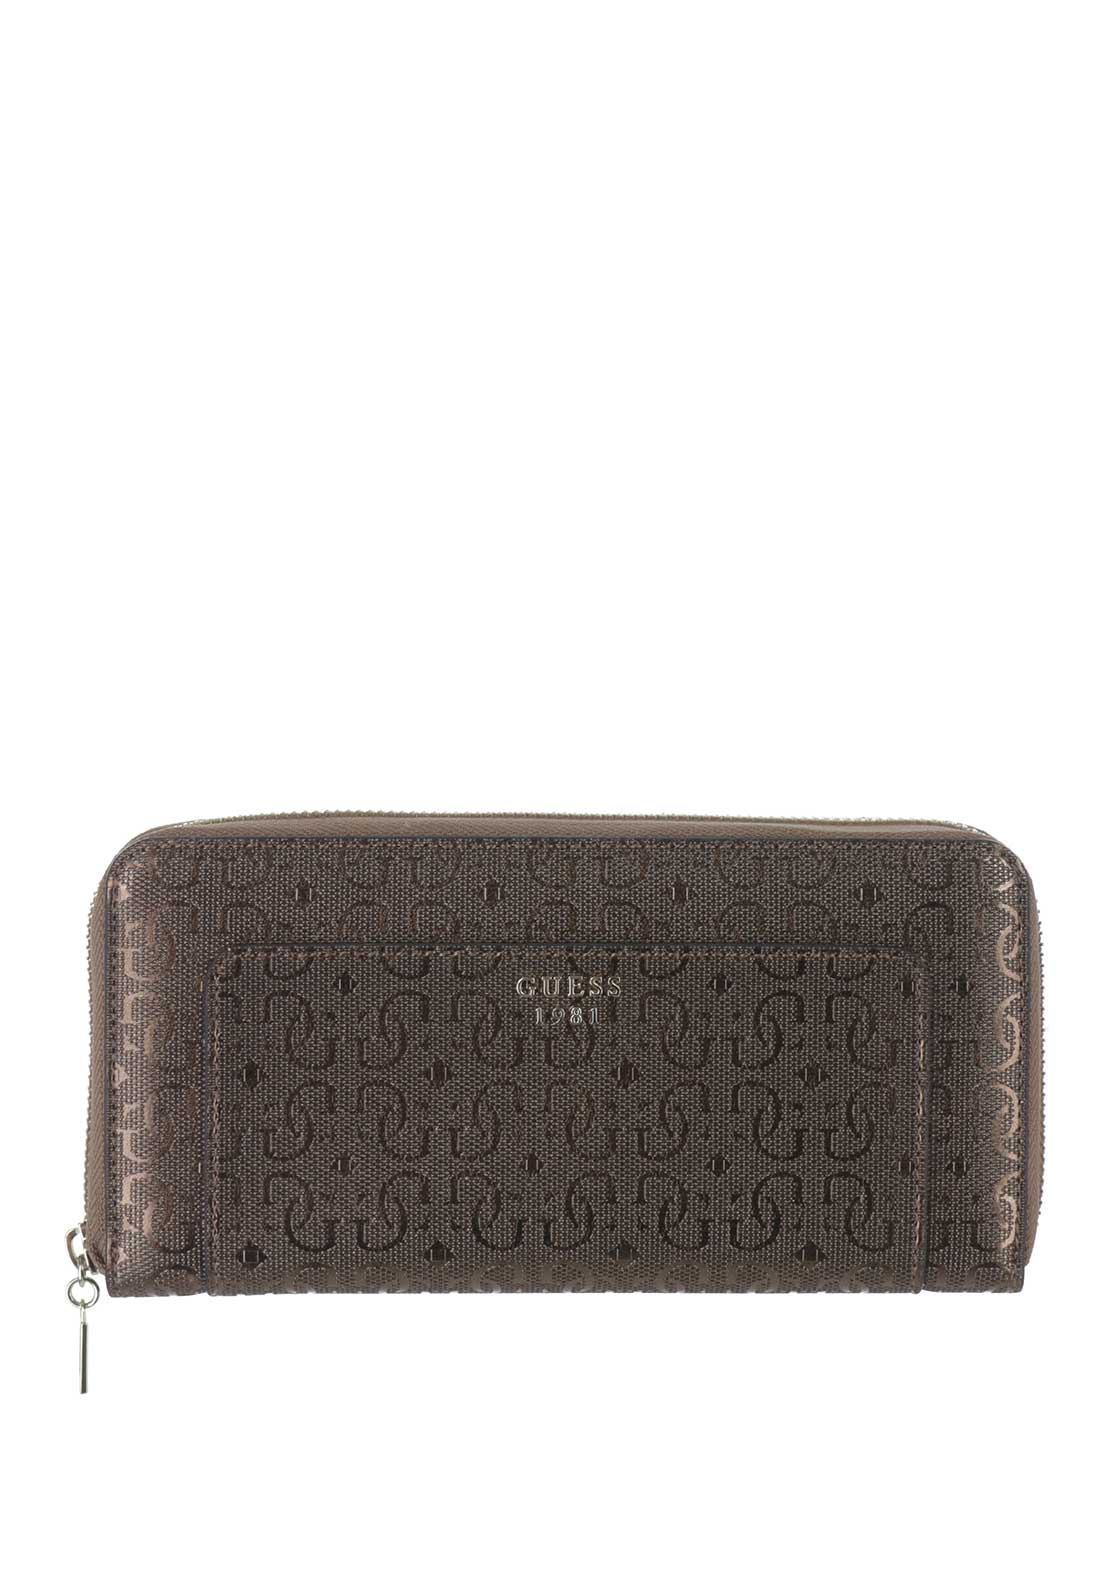 Guess Marian SLG Zip Around Purse, Bronze